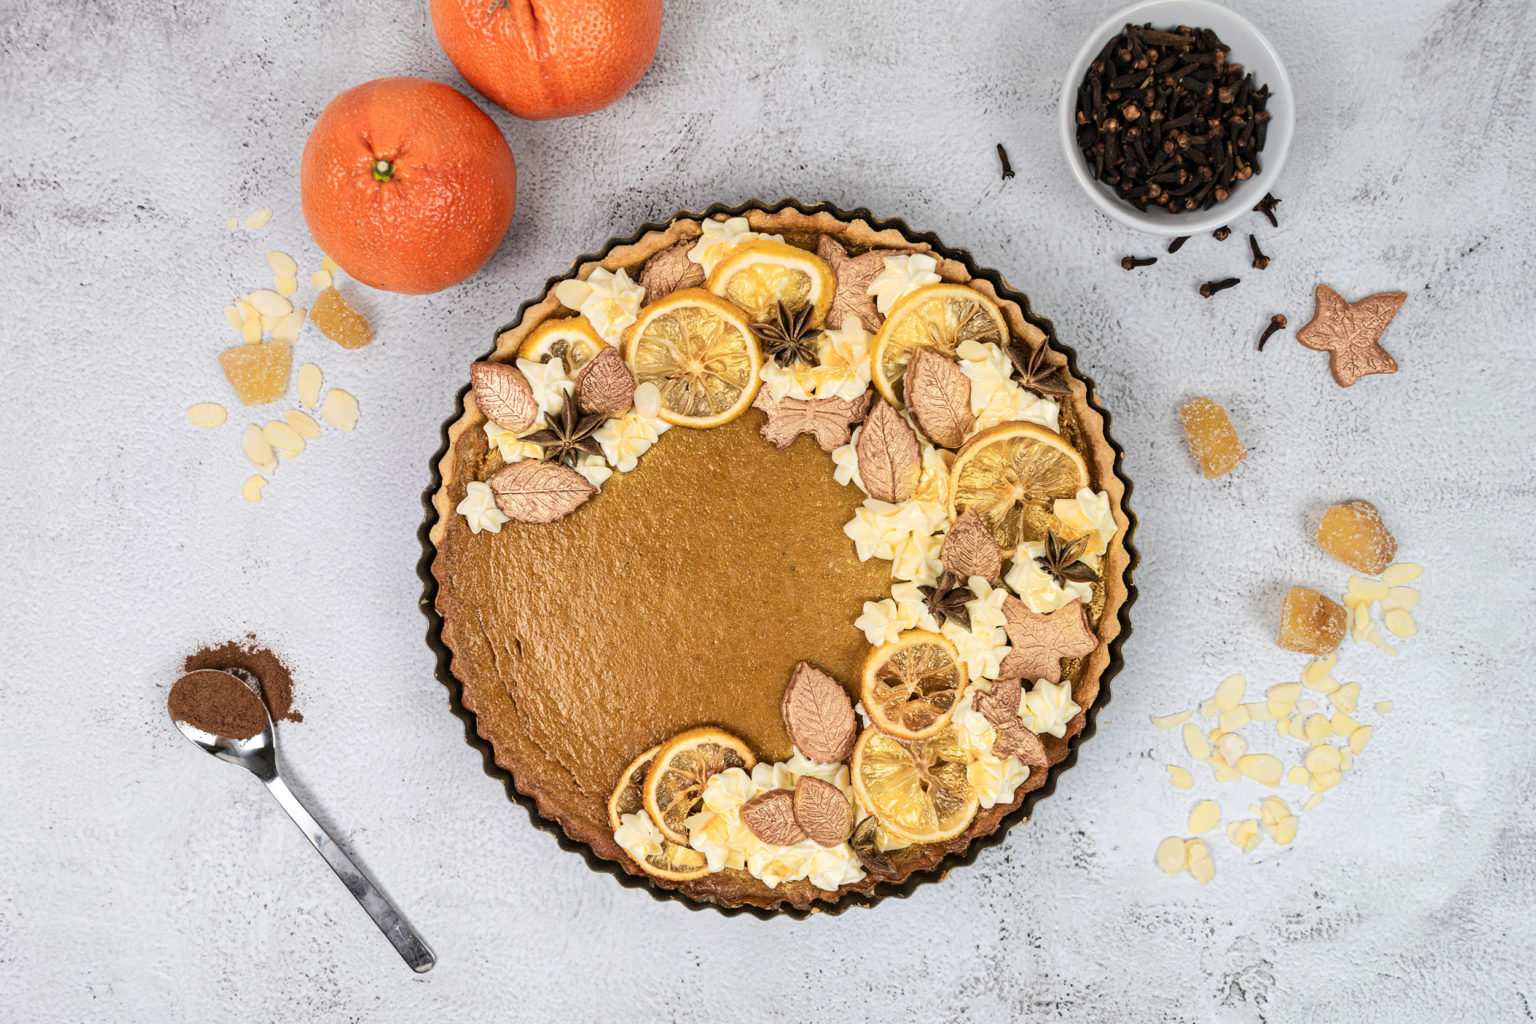 Flatlay of pumpkin pie with oranges, cloves and spoon of cinnamon